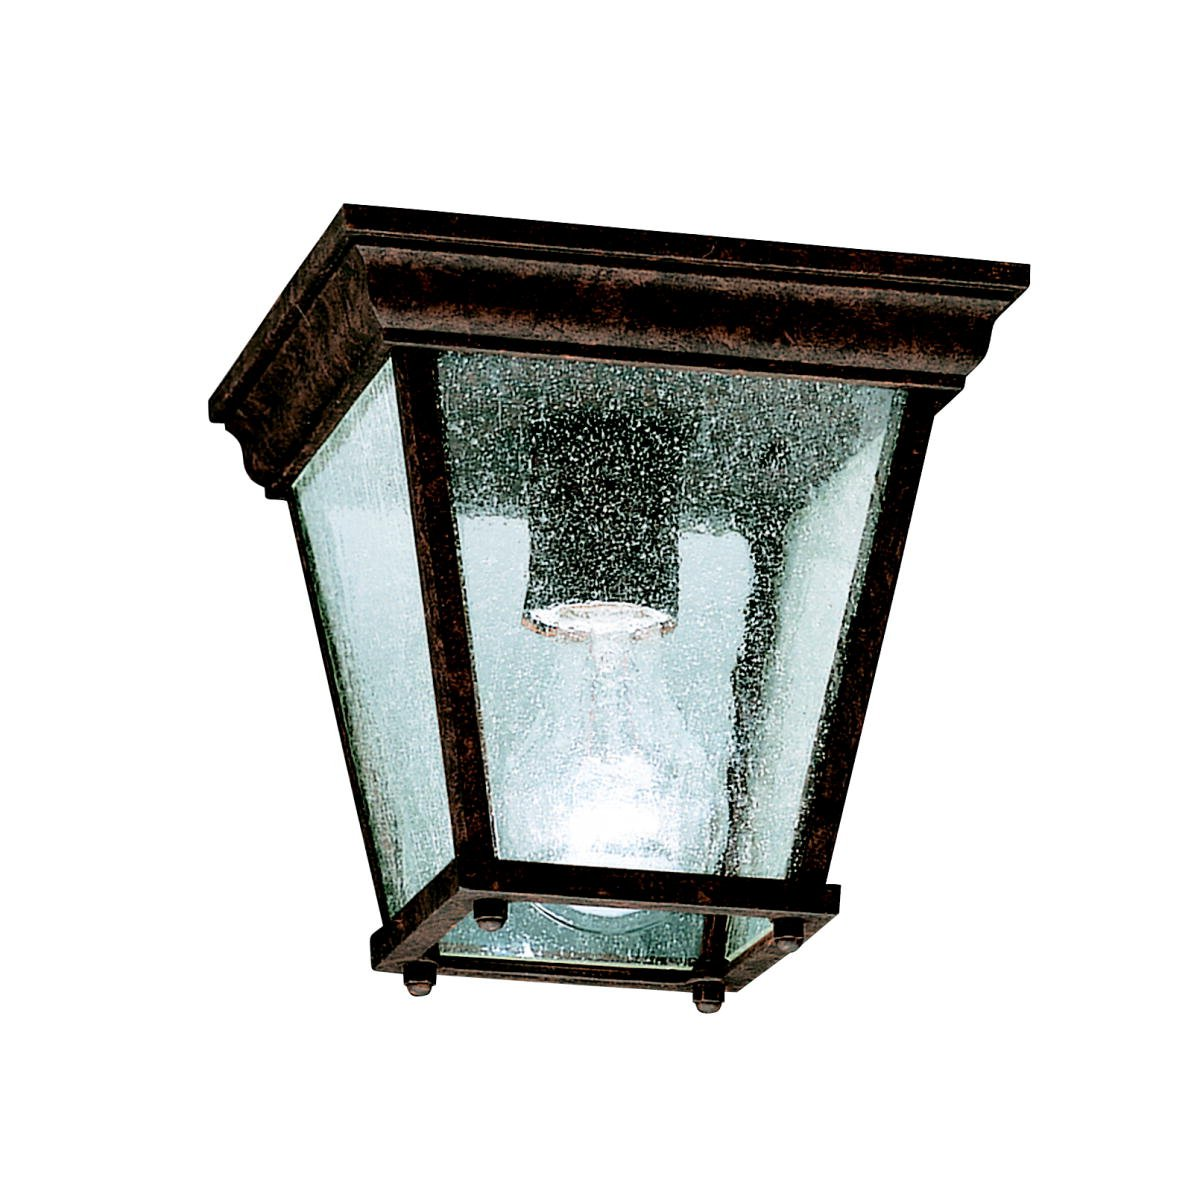 Kichler 9859bk one light outdoor ceiling mount flush mount ceiling kichler 9859bk one light outdoor ceiling mount flush mount ceiling light fixtures amazon arubaitofo Image collections